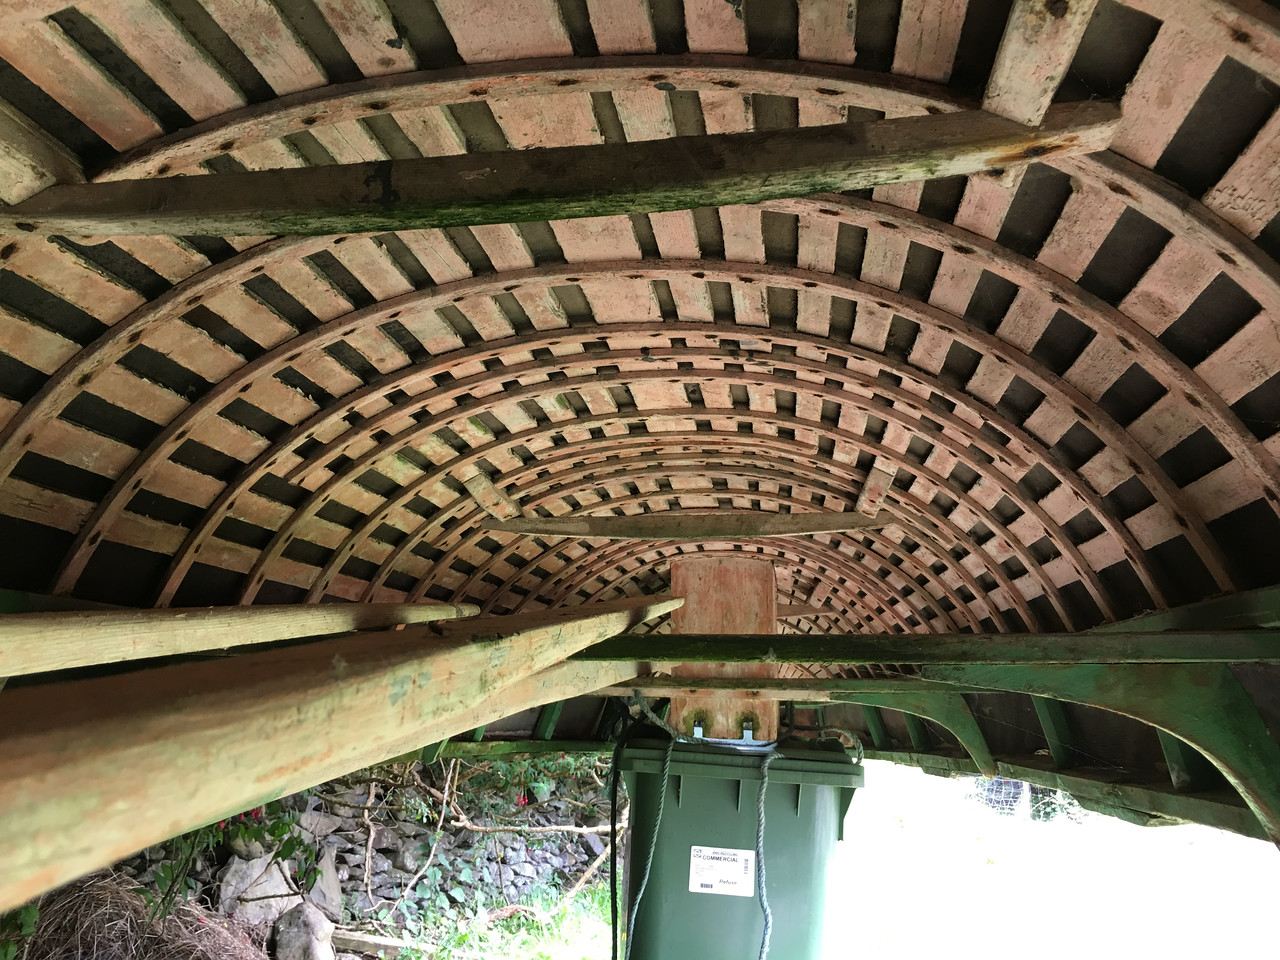 Under the up-side-down boat shows the wood framing